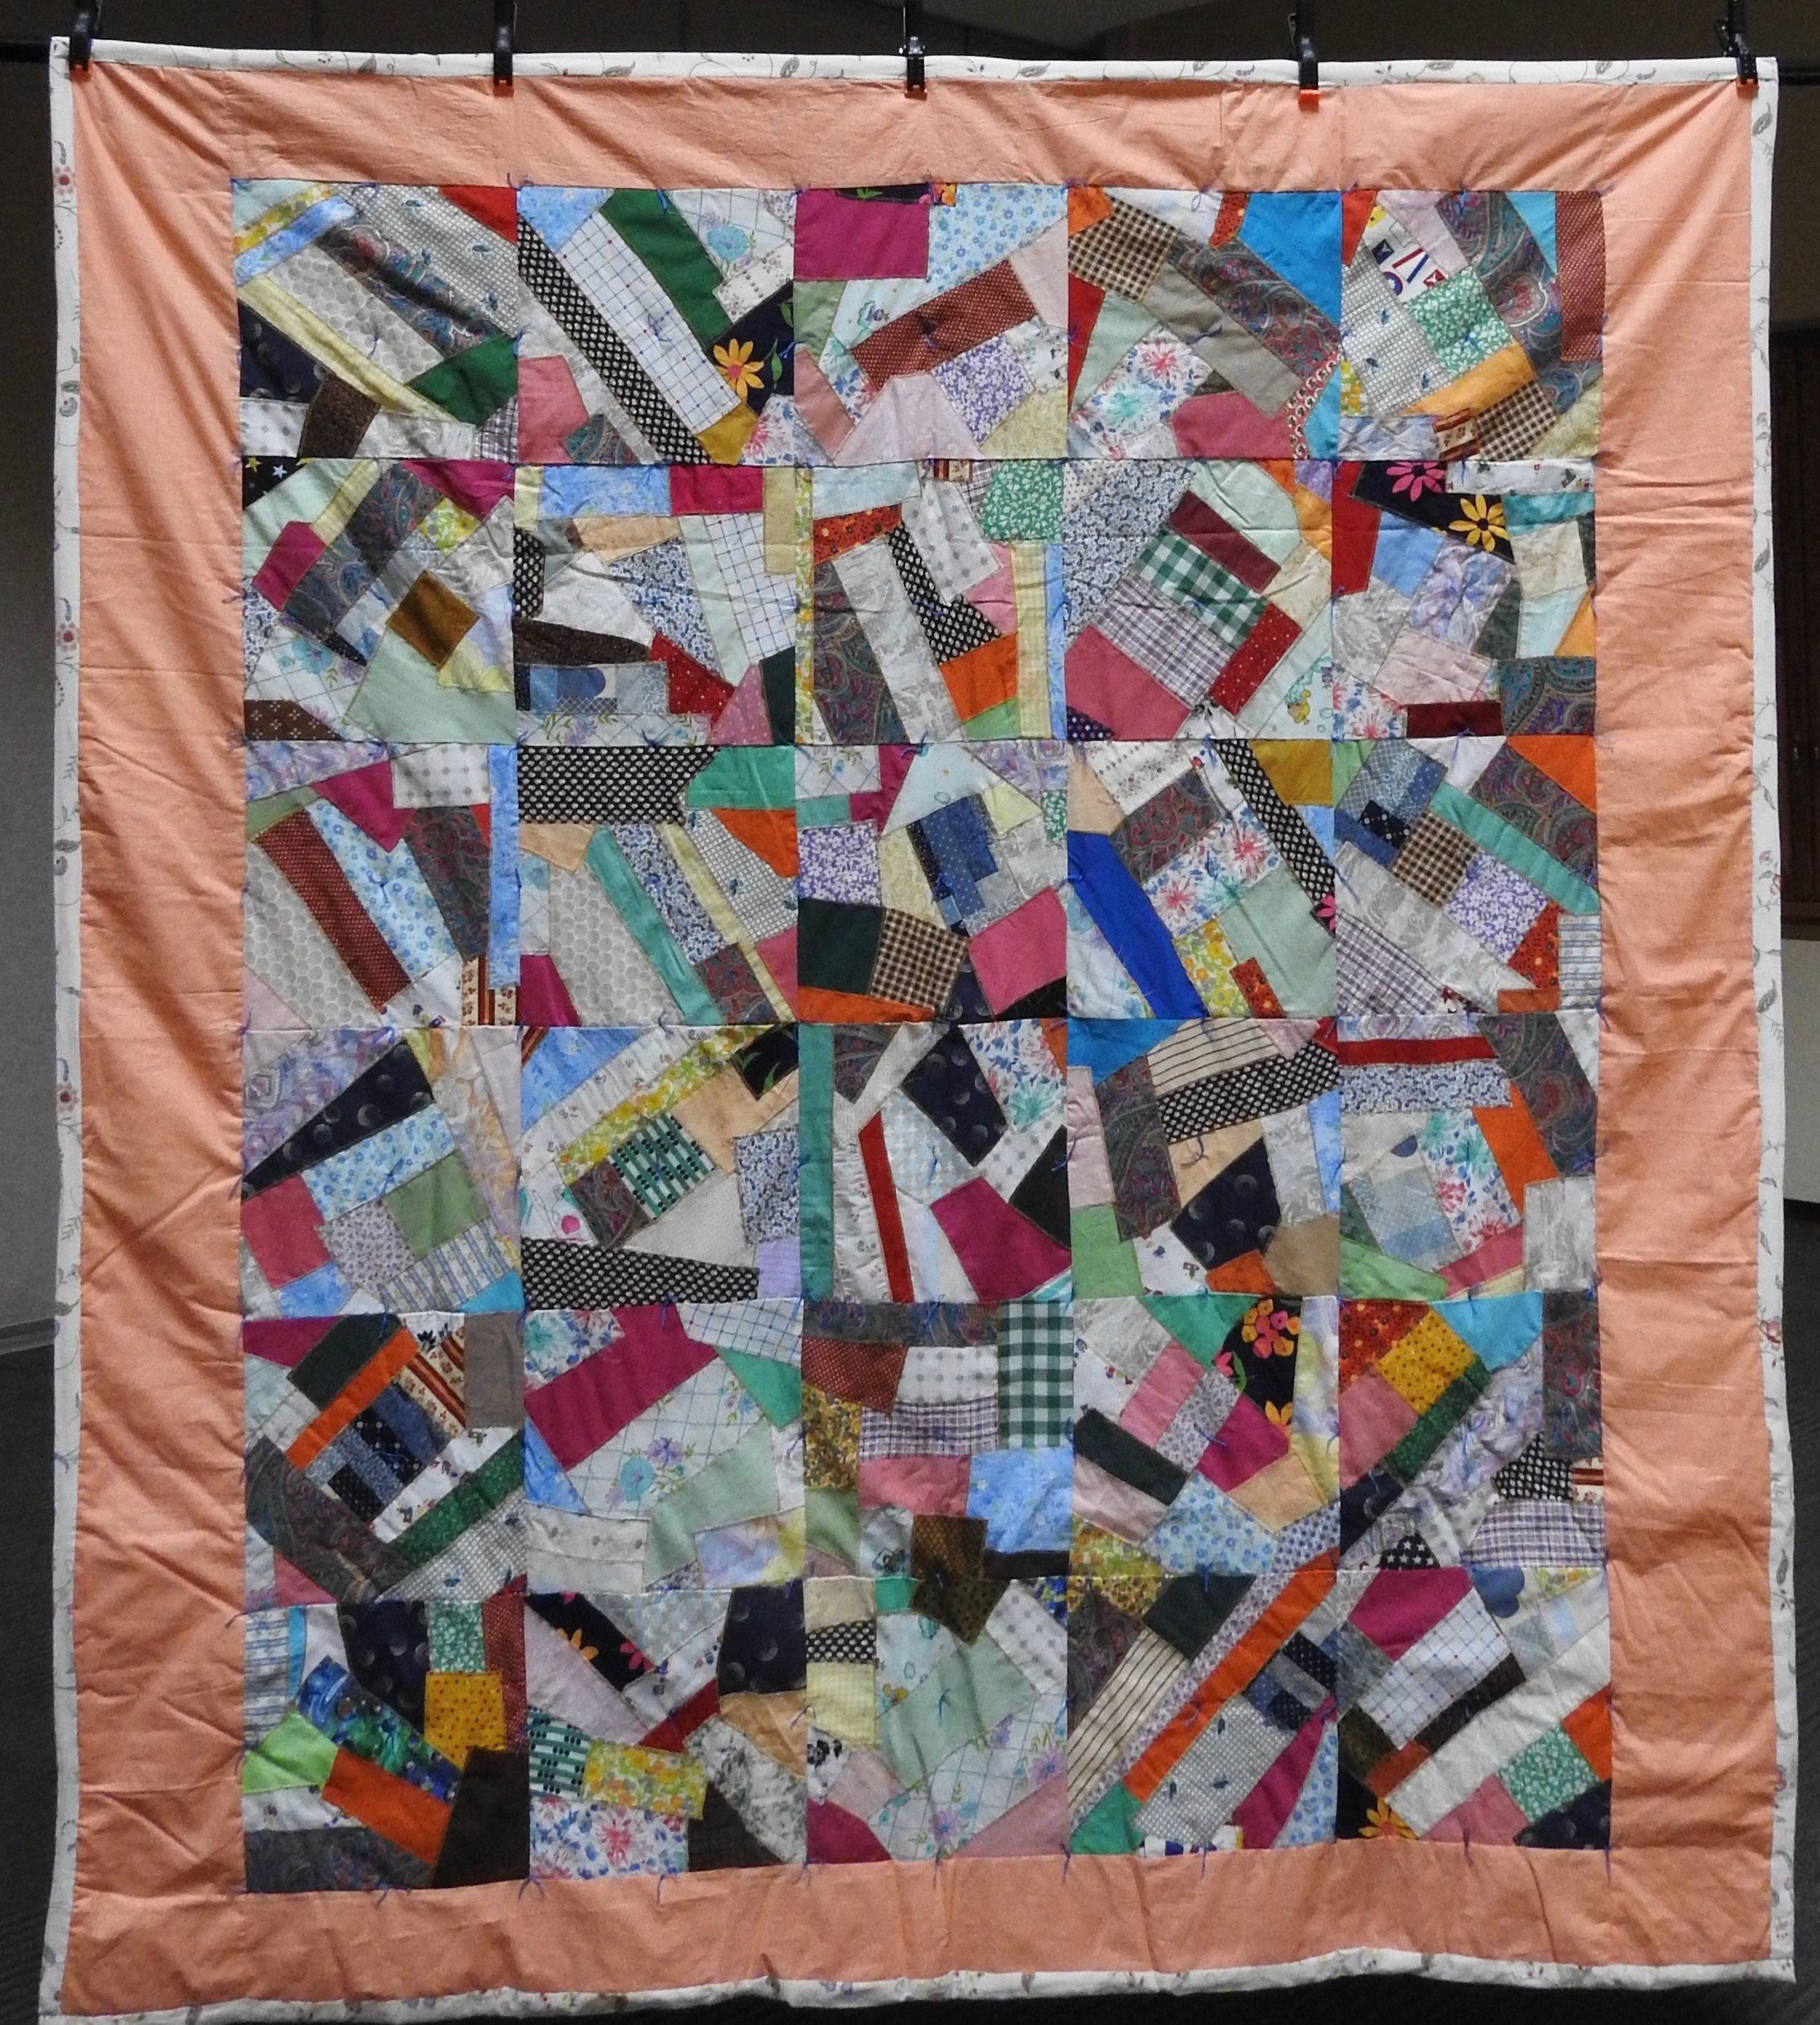 Crazy Blocks-Comforter, Pieced & Knotted, Donated Anonymously, 68 x 70""